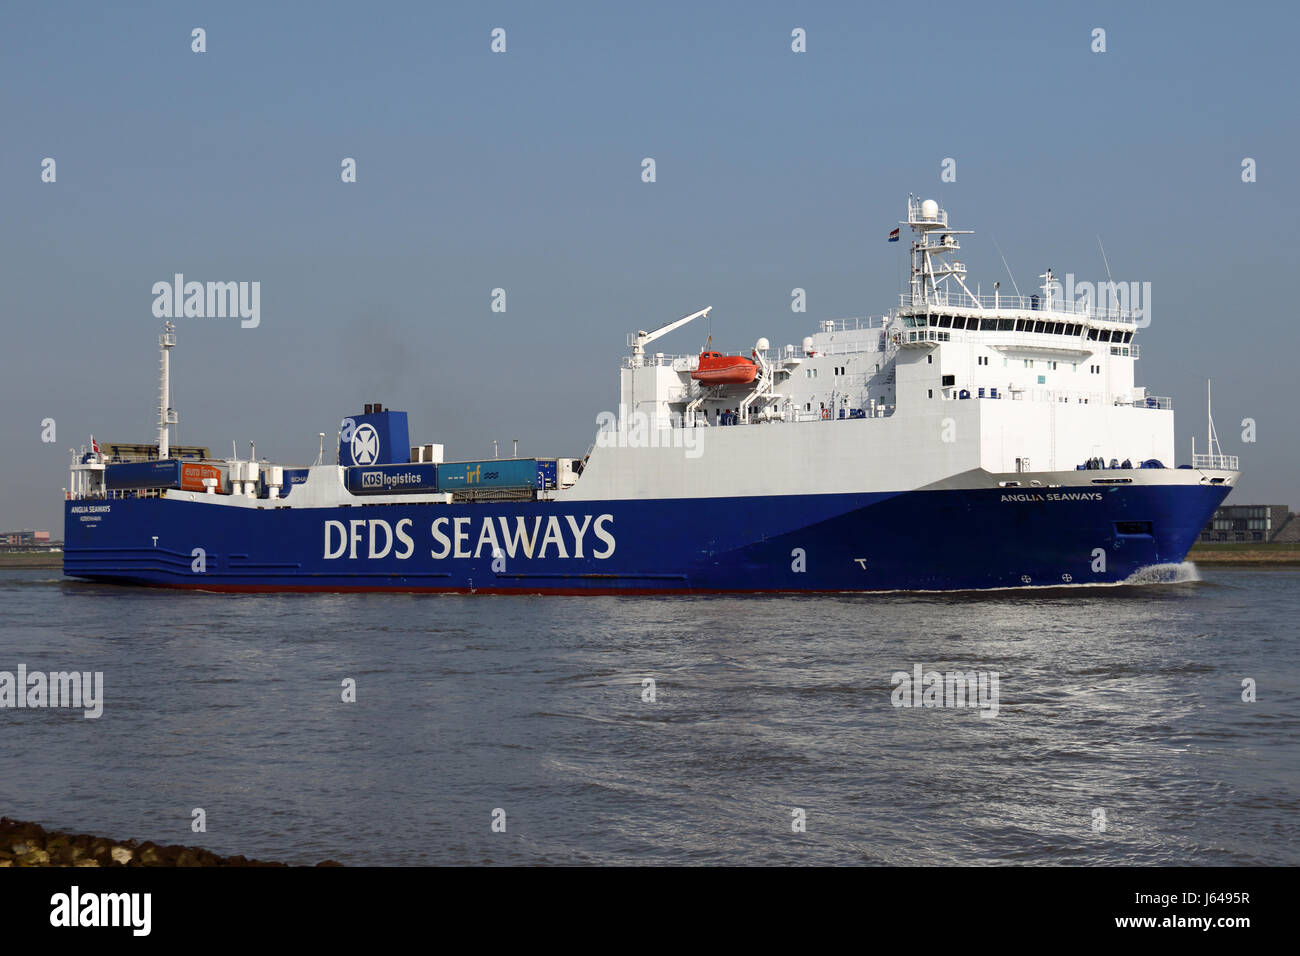 The Ro-Ro ship Anglia Seaways enters the port of Rotterdam in the canal. - Stock Image